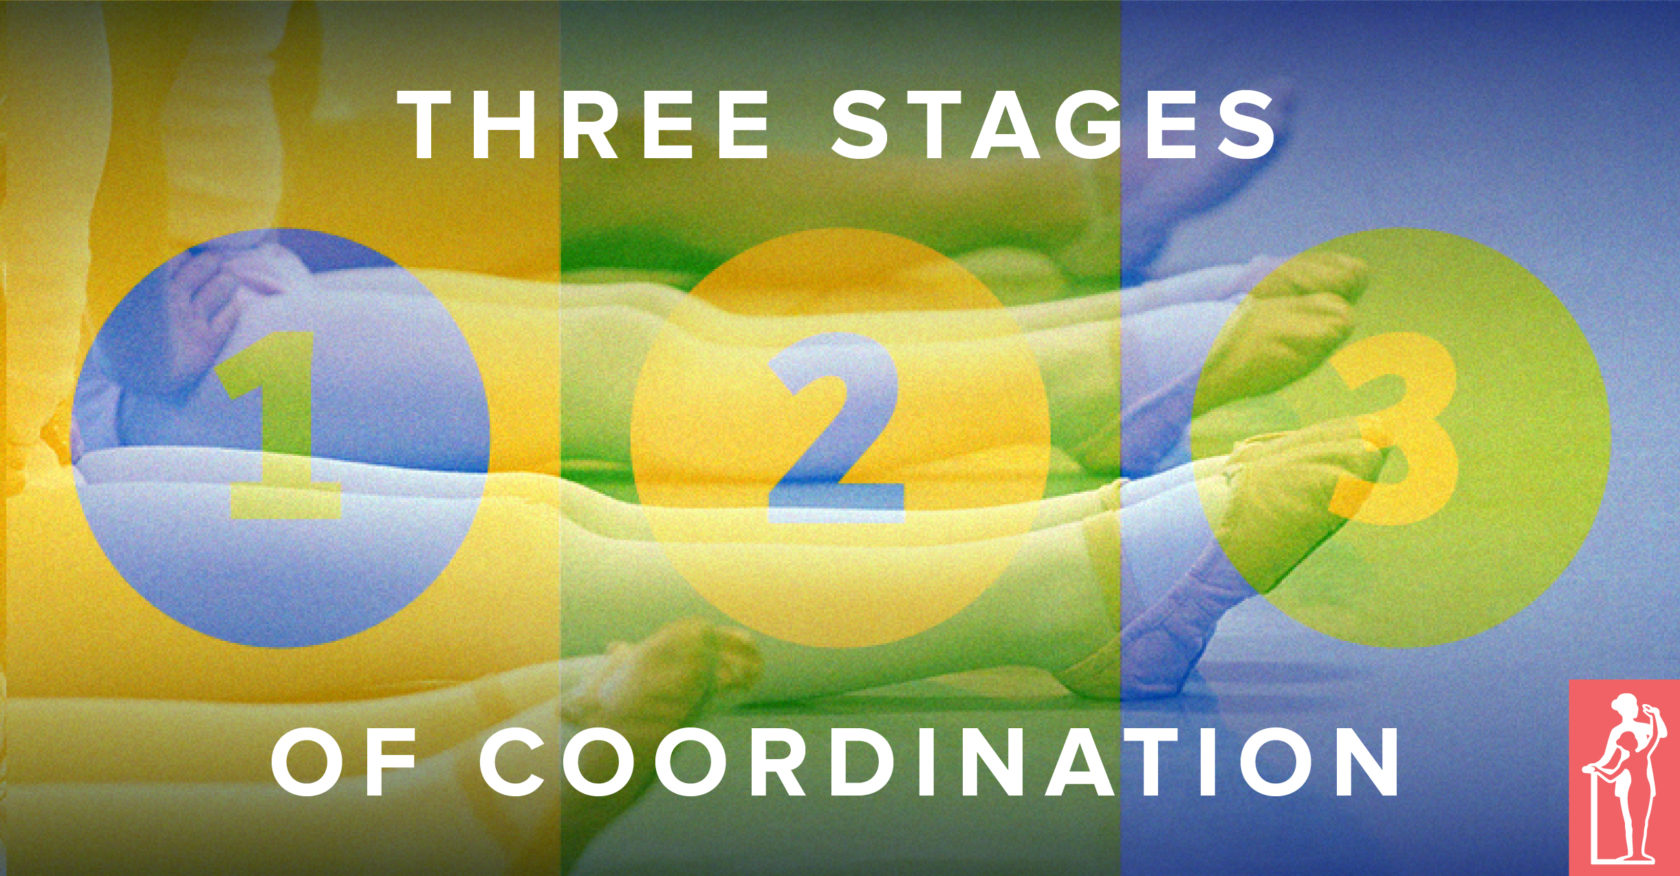 The 3 Stages of Coordination